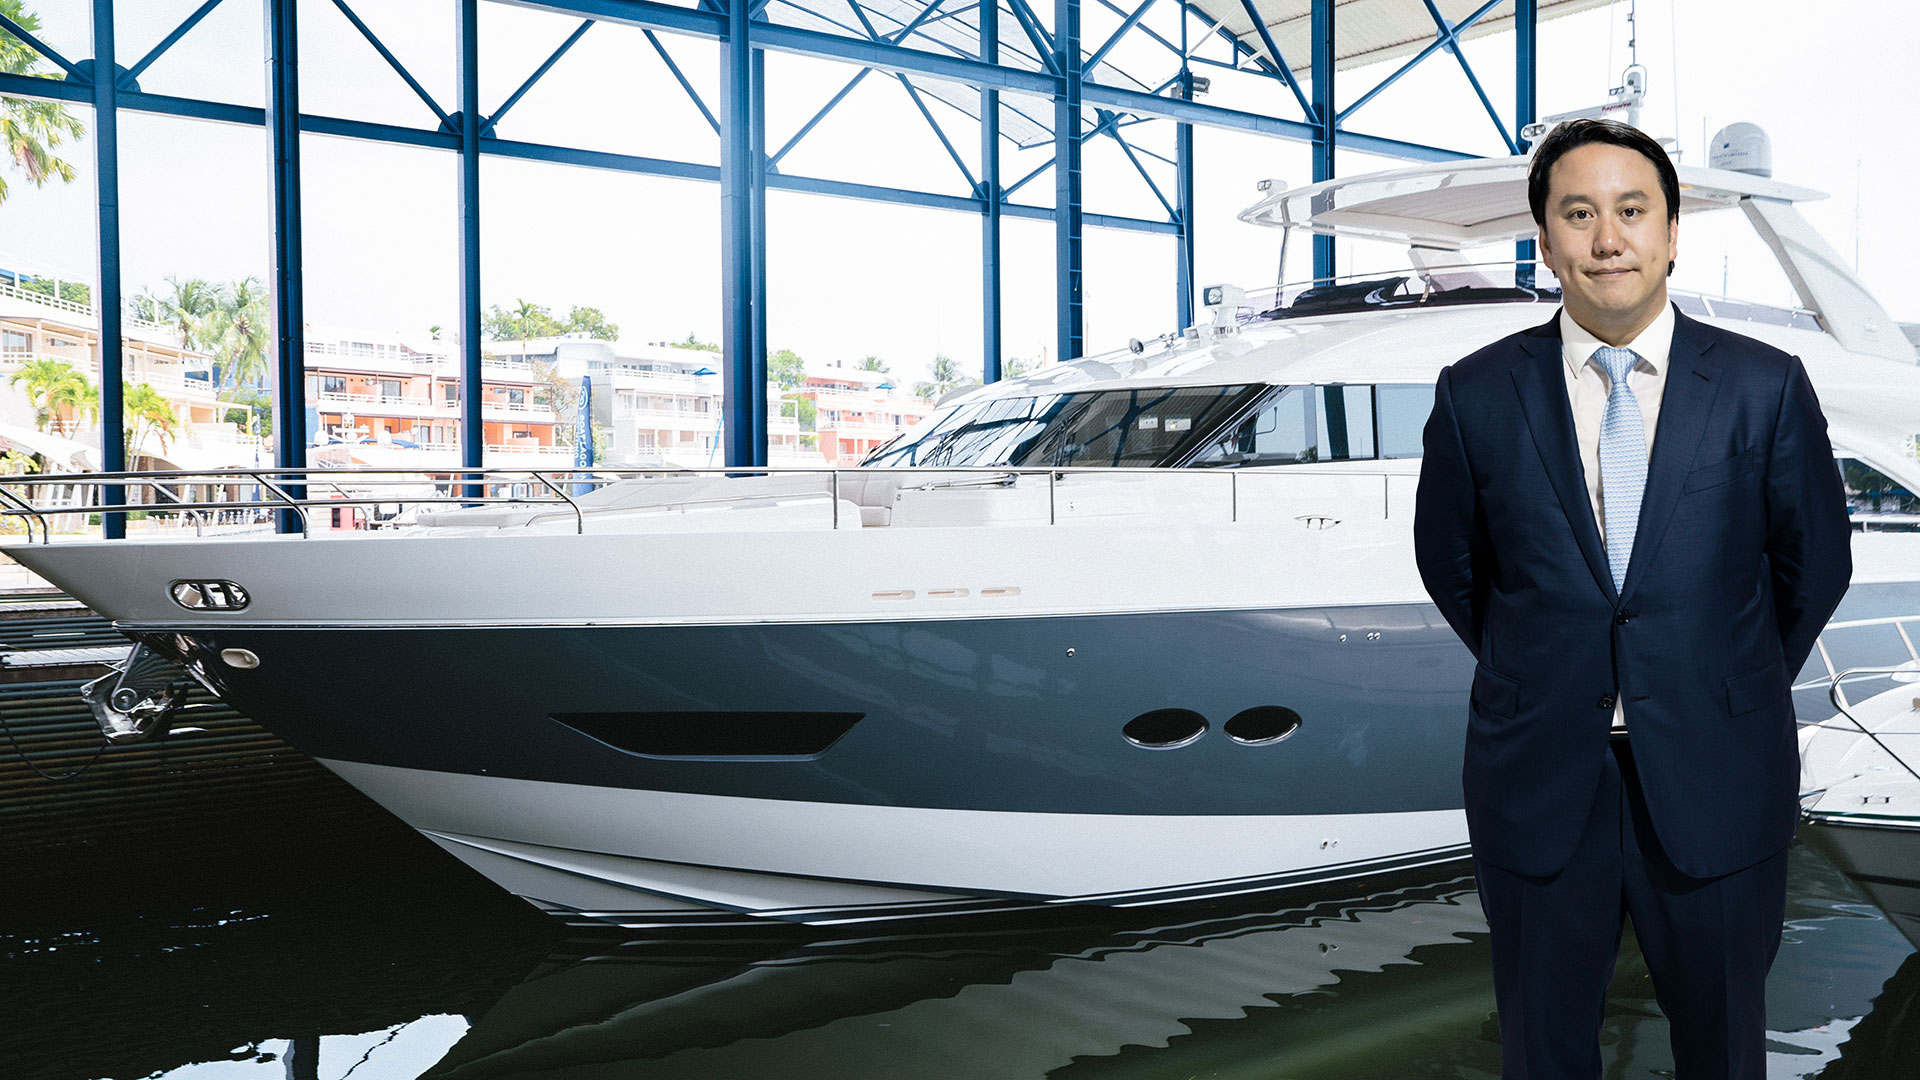 Mr. Vrit Yongsakul, Managing Director of Boat Lagoon Yachting Co., Ltd., is photographed with a Princess yacht.